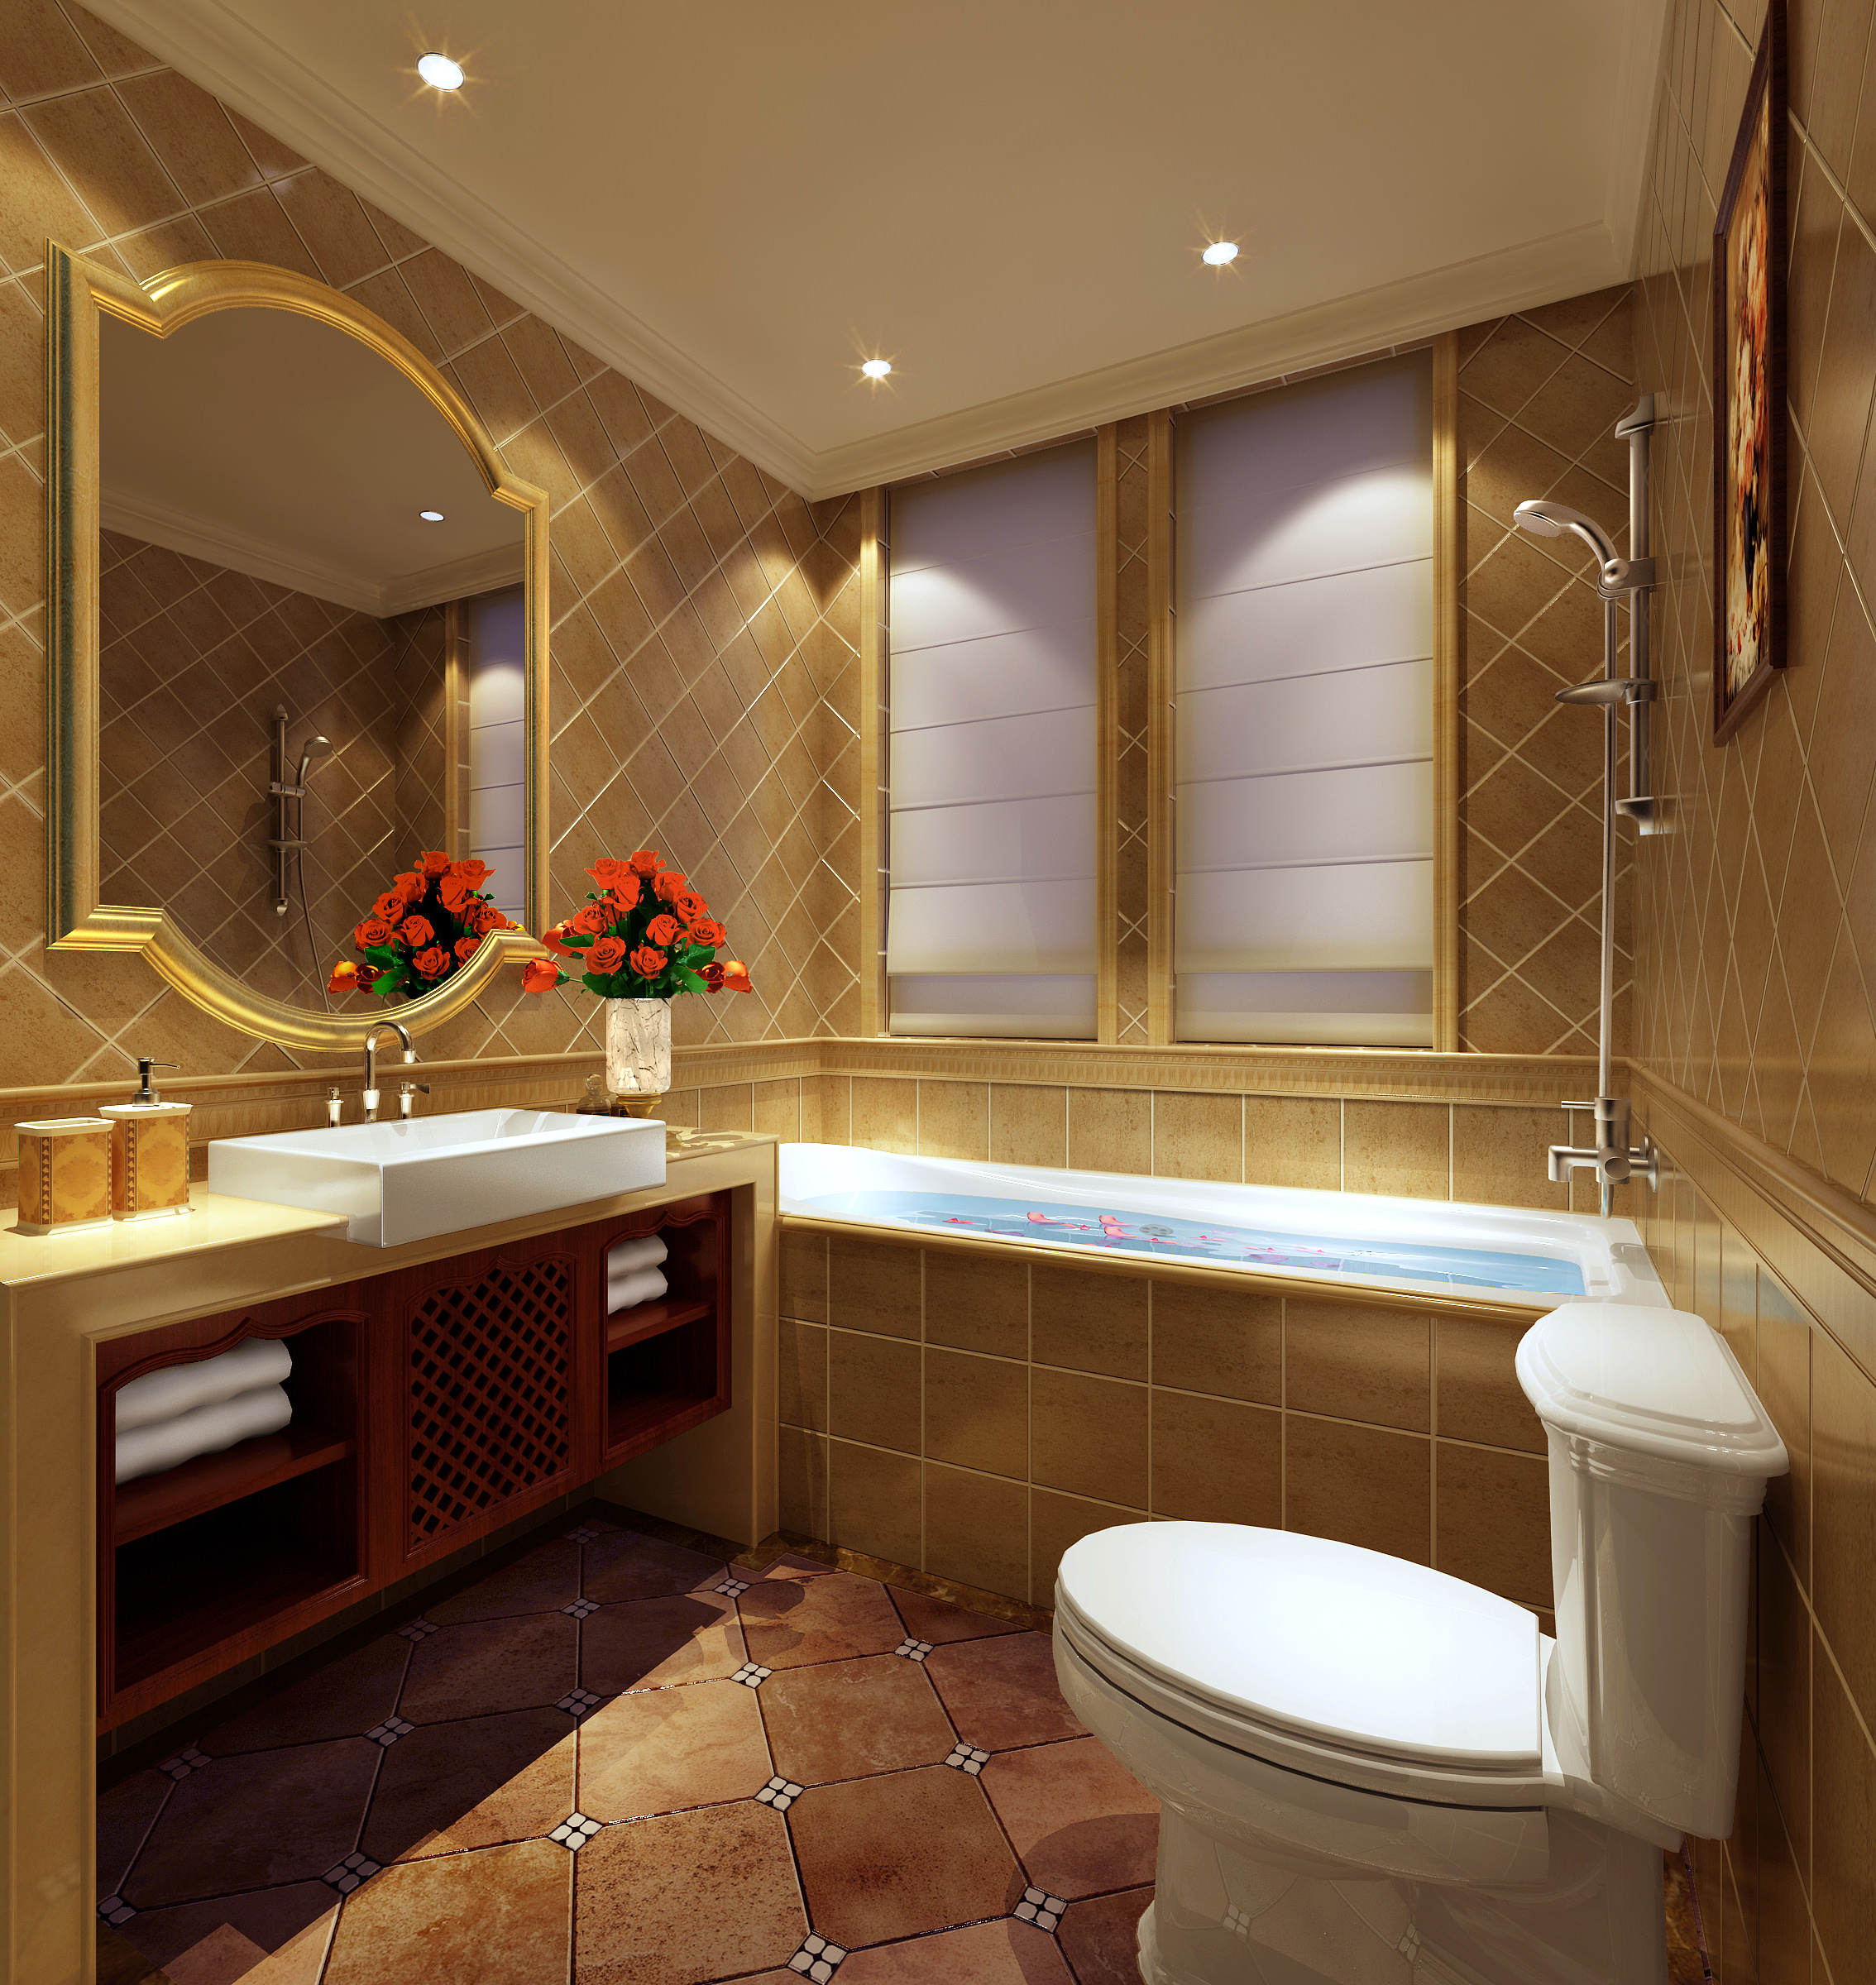 Luxury bathroom 3d model max for Model home bathroom photos